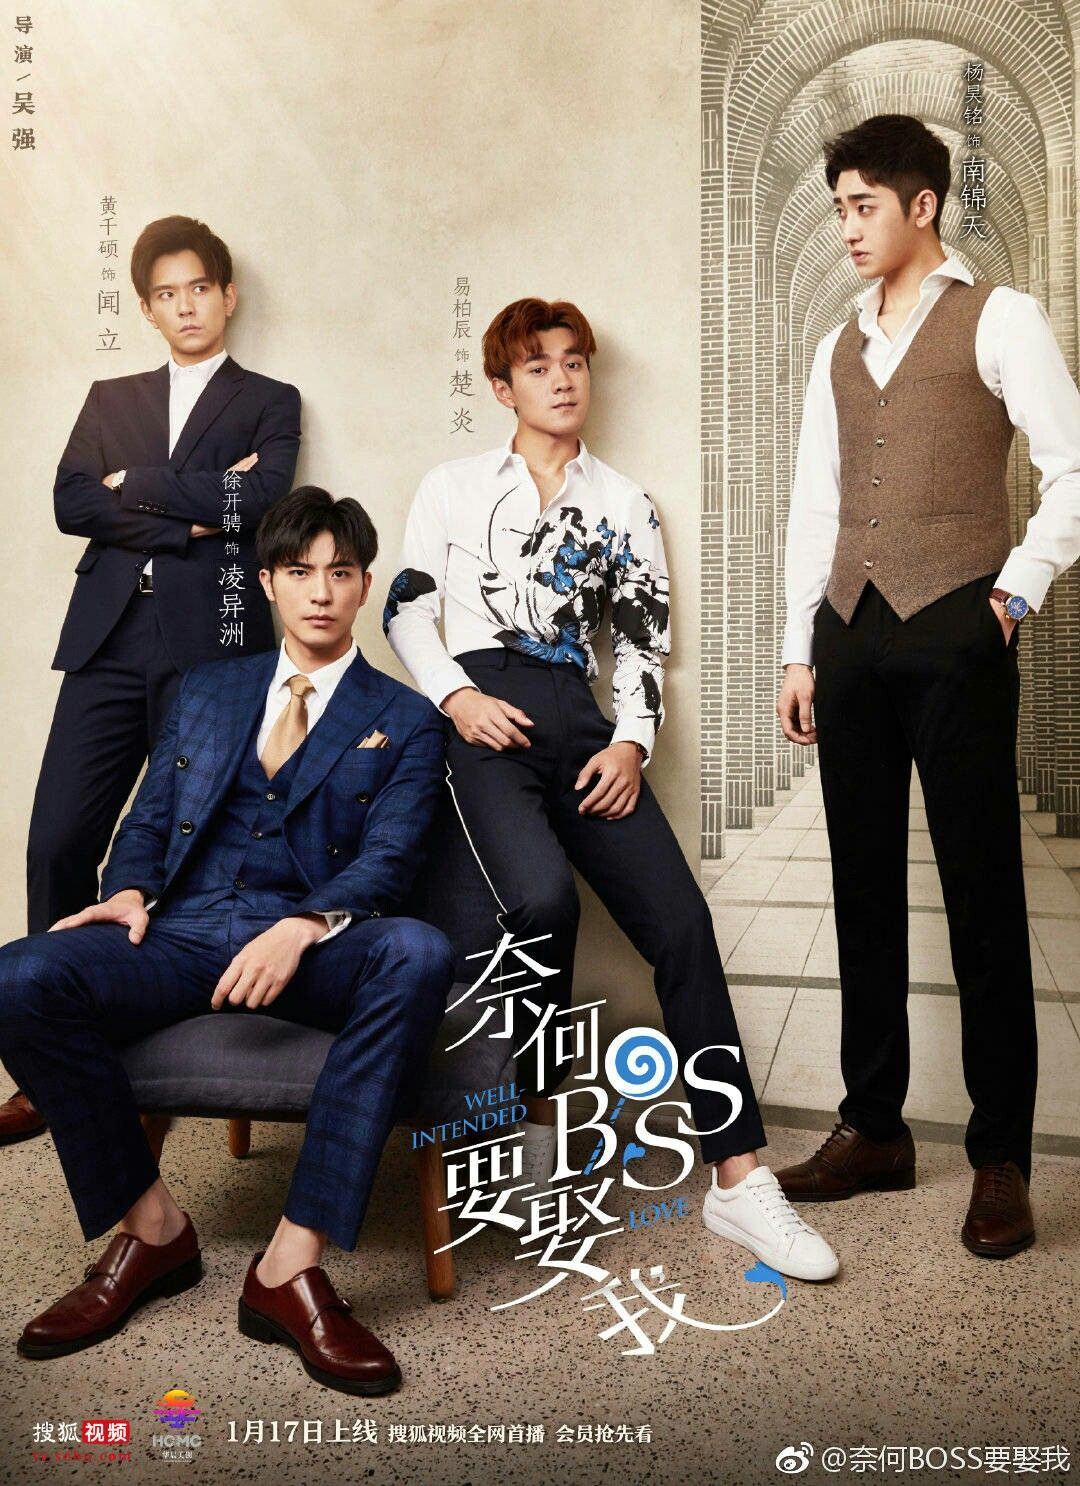 Well-intended Love : well-intended, Simran, Chinese, Series, Korean, Drama, Kdrama, Actors,, Chines